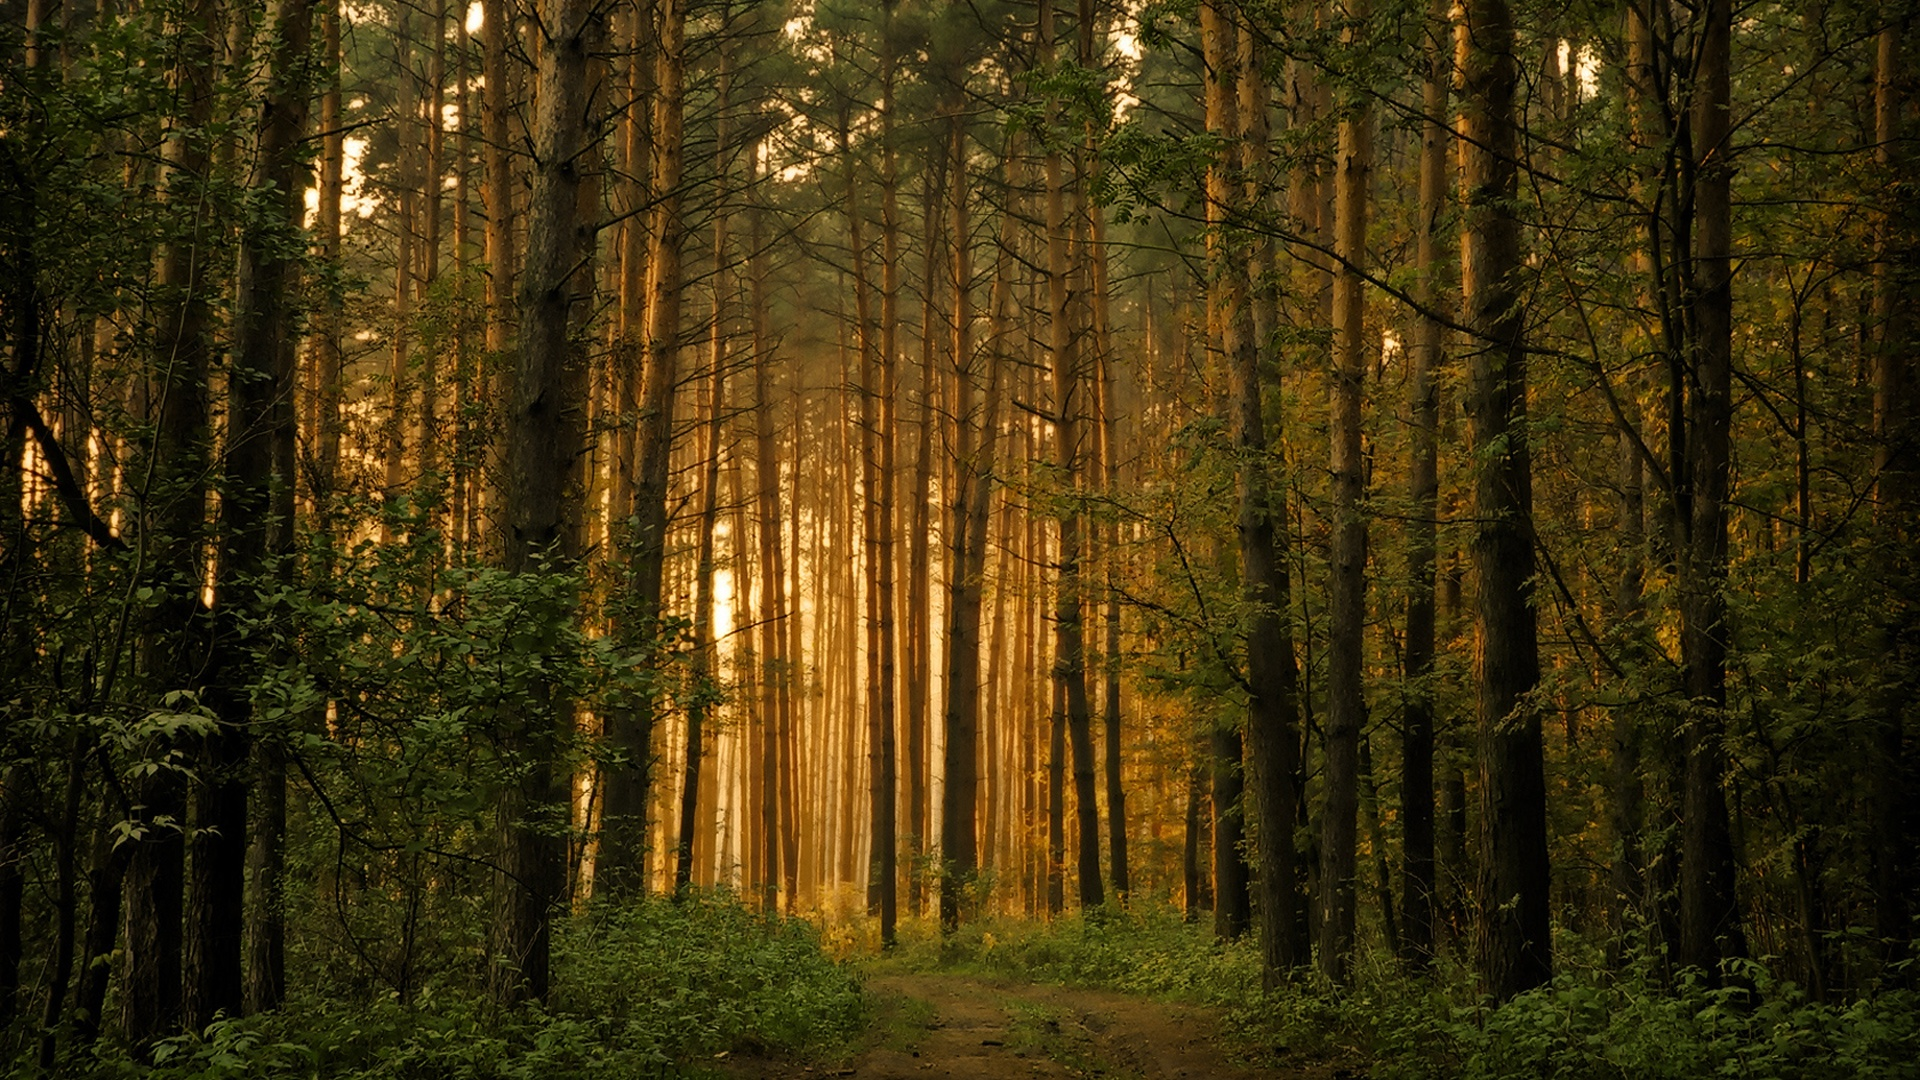 Forest-hd-images-1.jpg